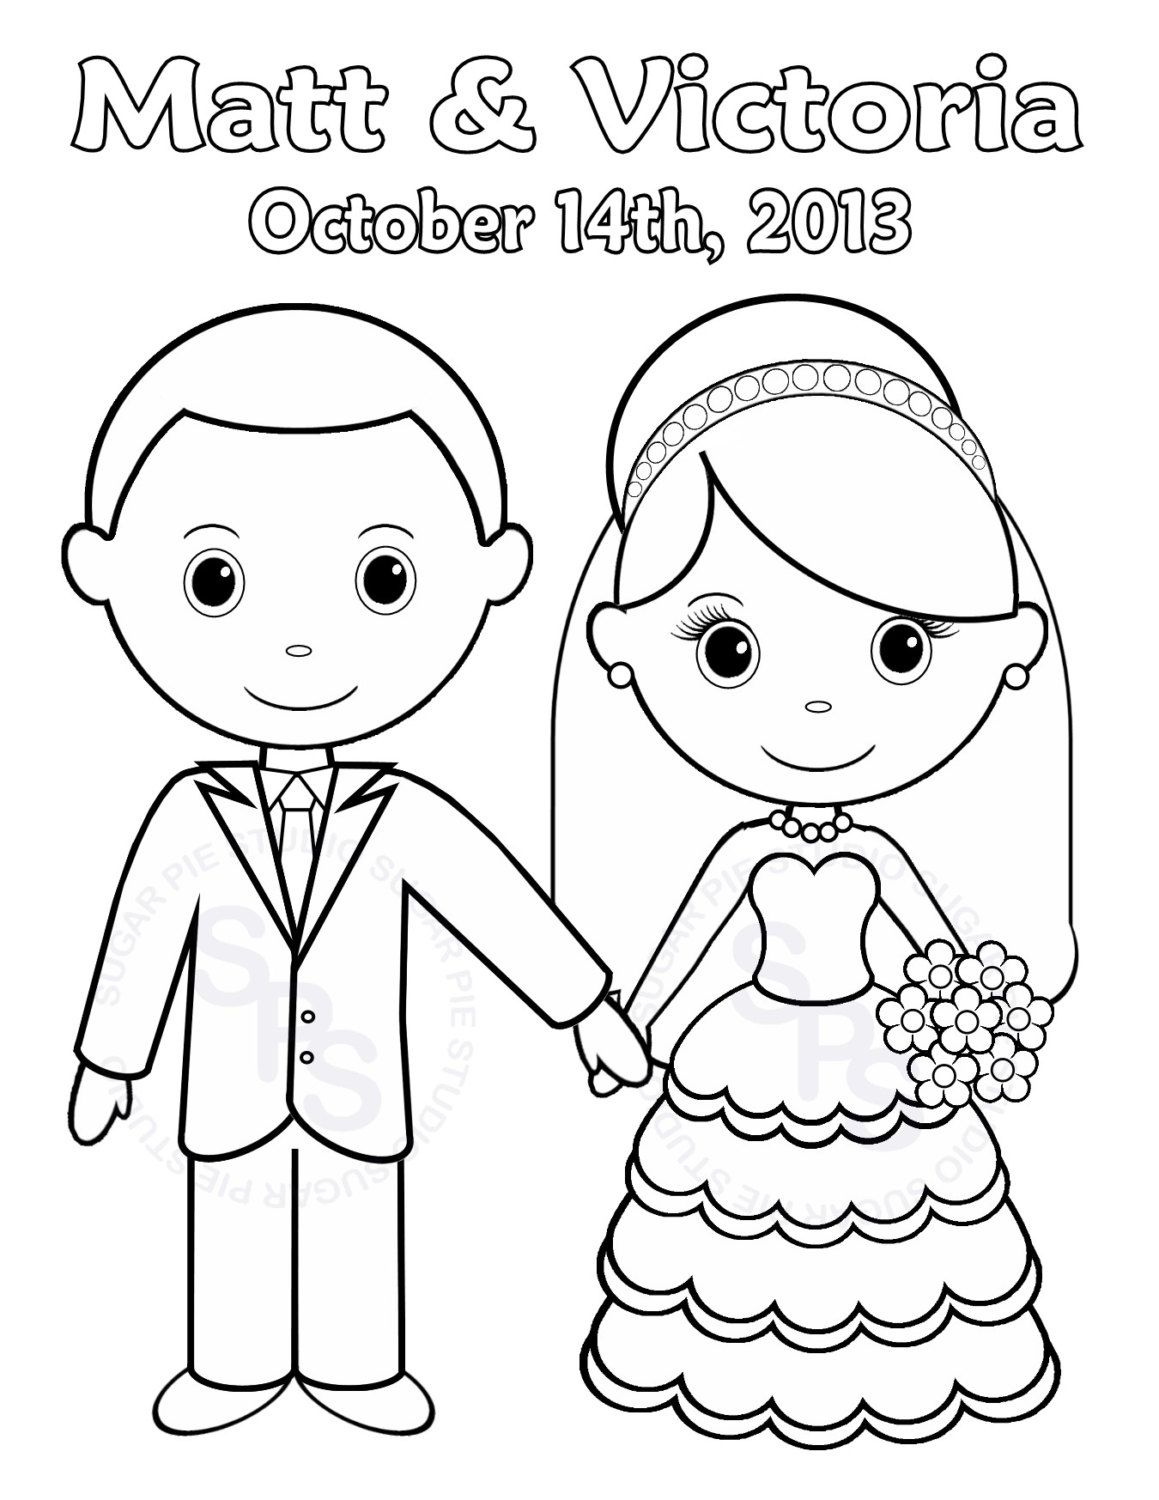 Printable Wedding Coloring Pages Kids - Coloring Home